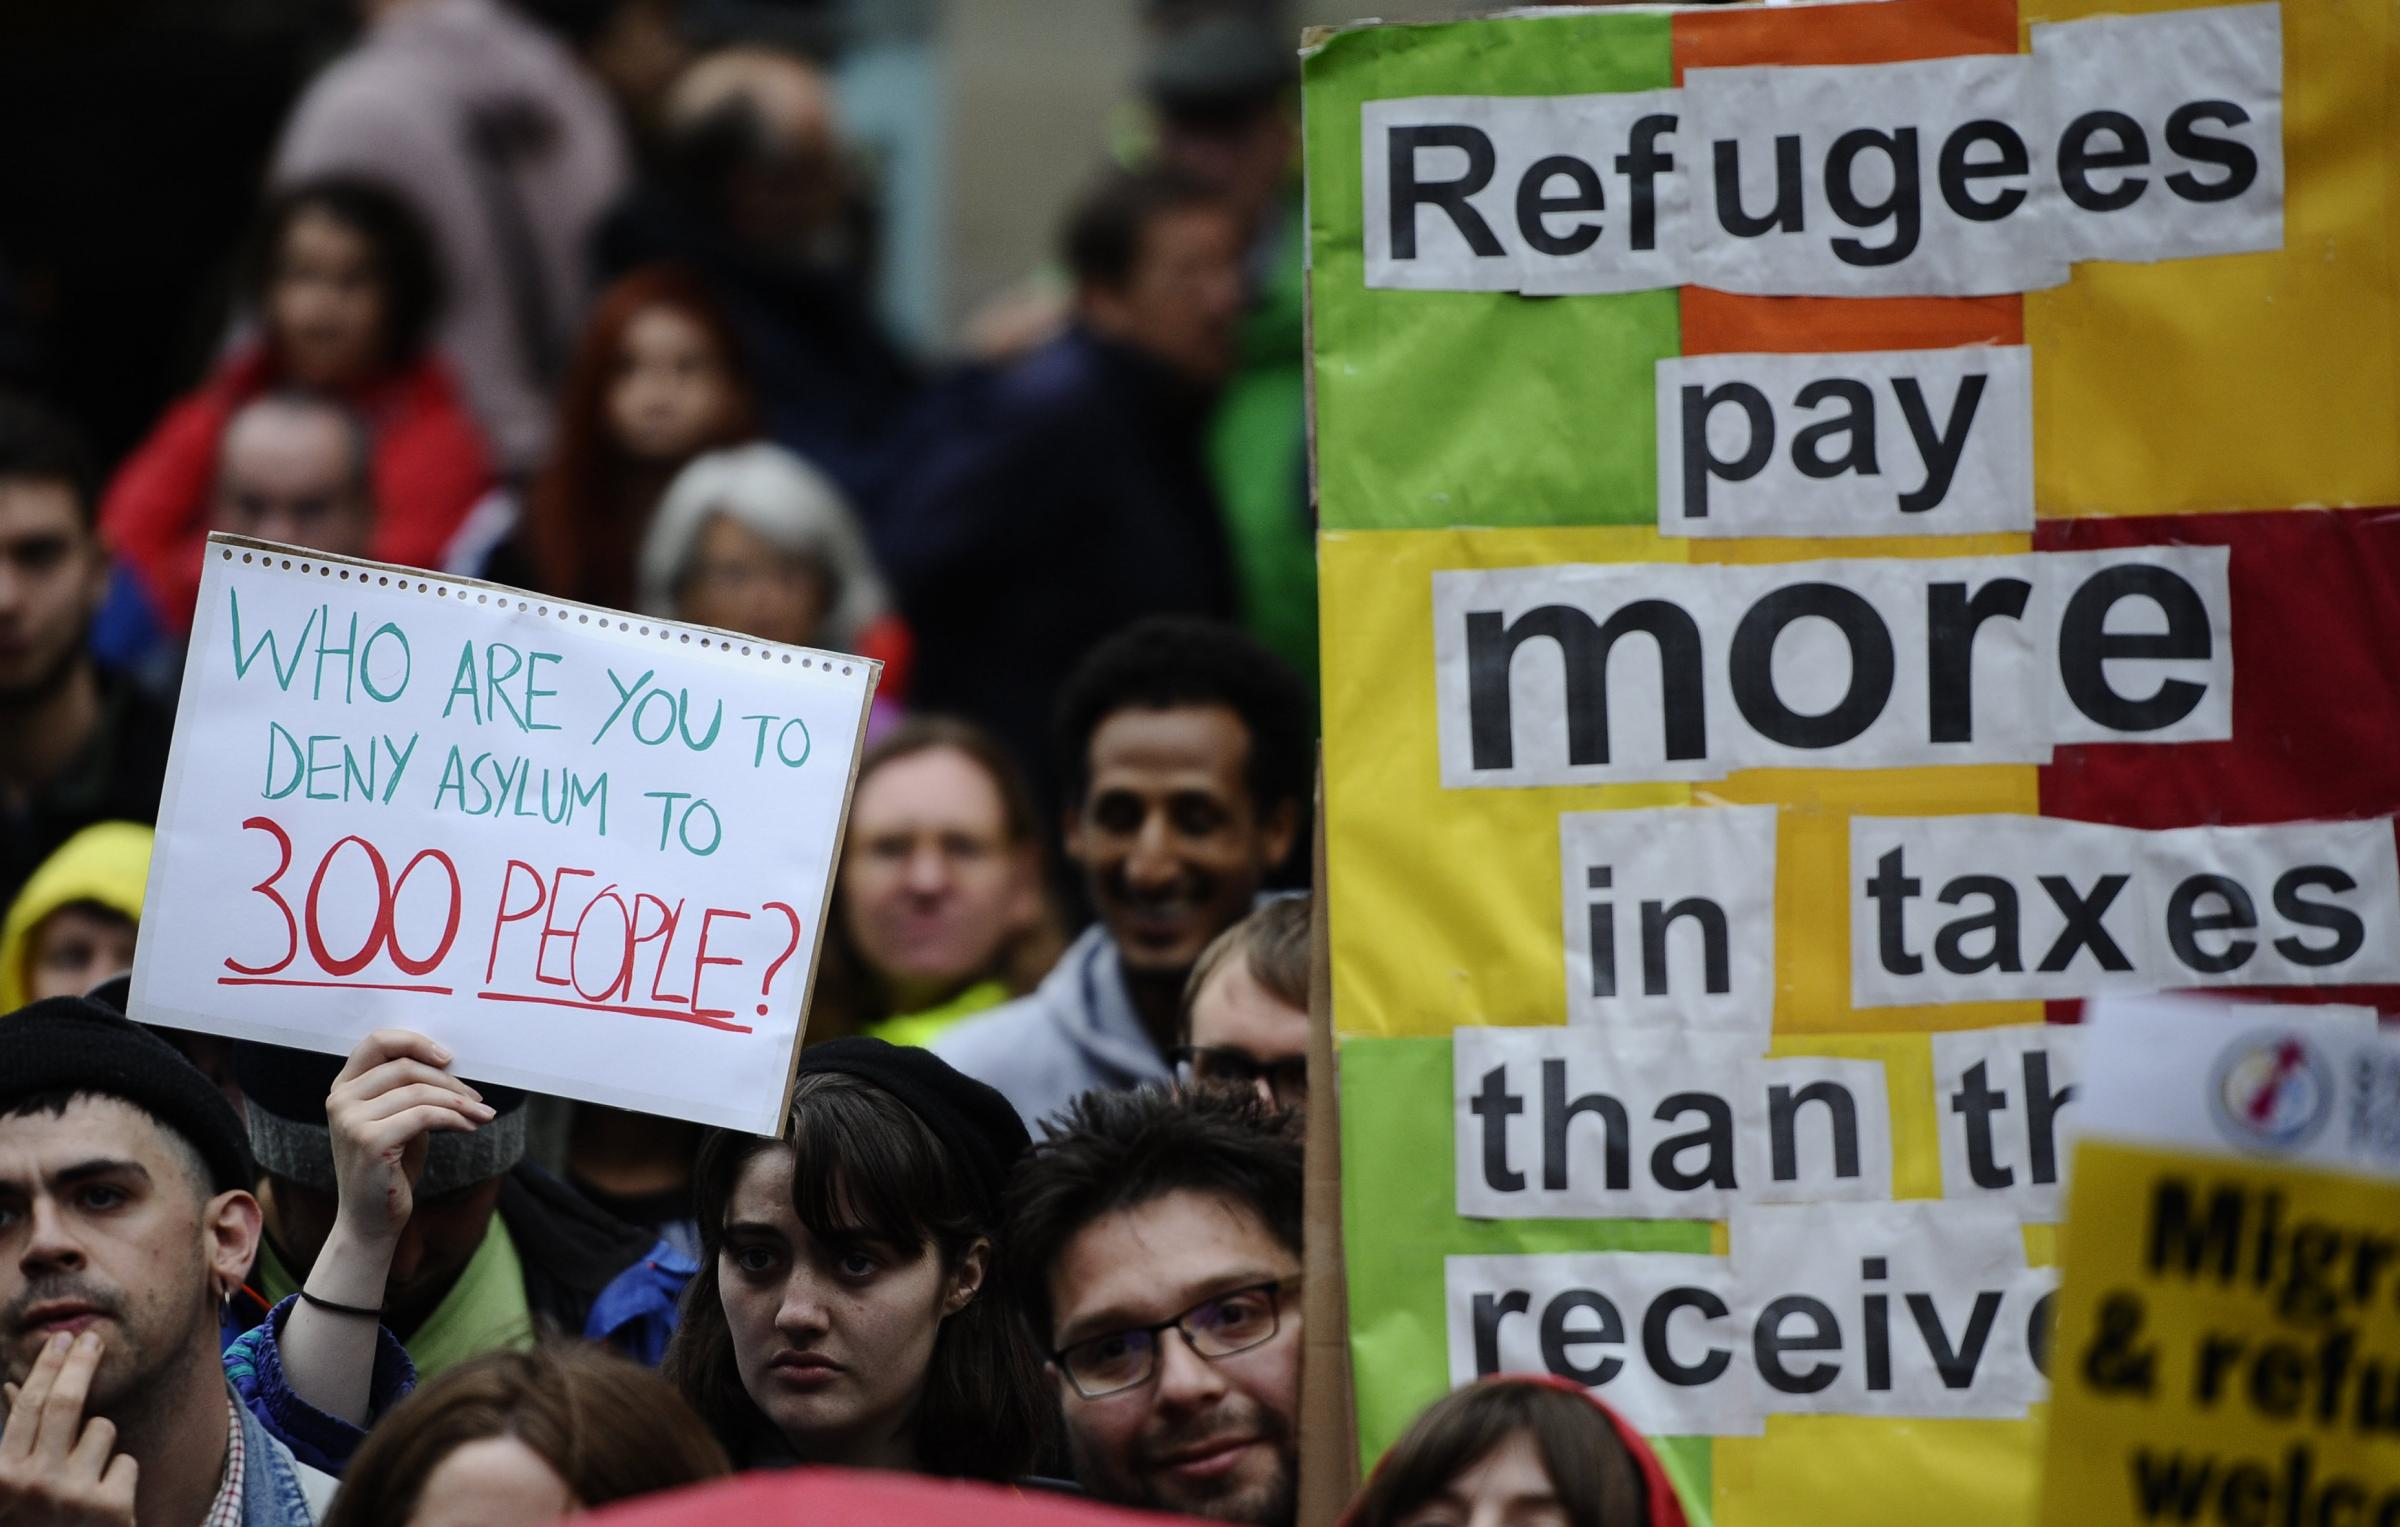 Demonstrators show their support for refugees at an event in Glasgow Photograph: Jamie Simpson